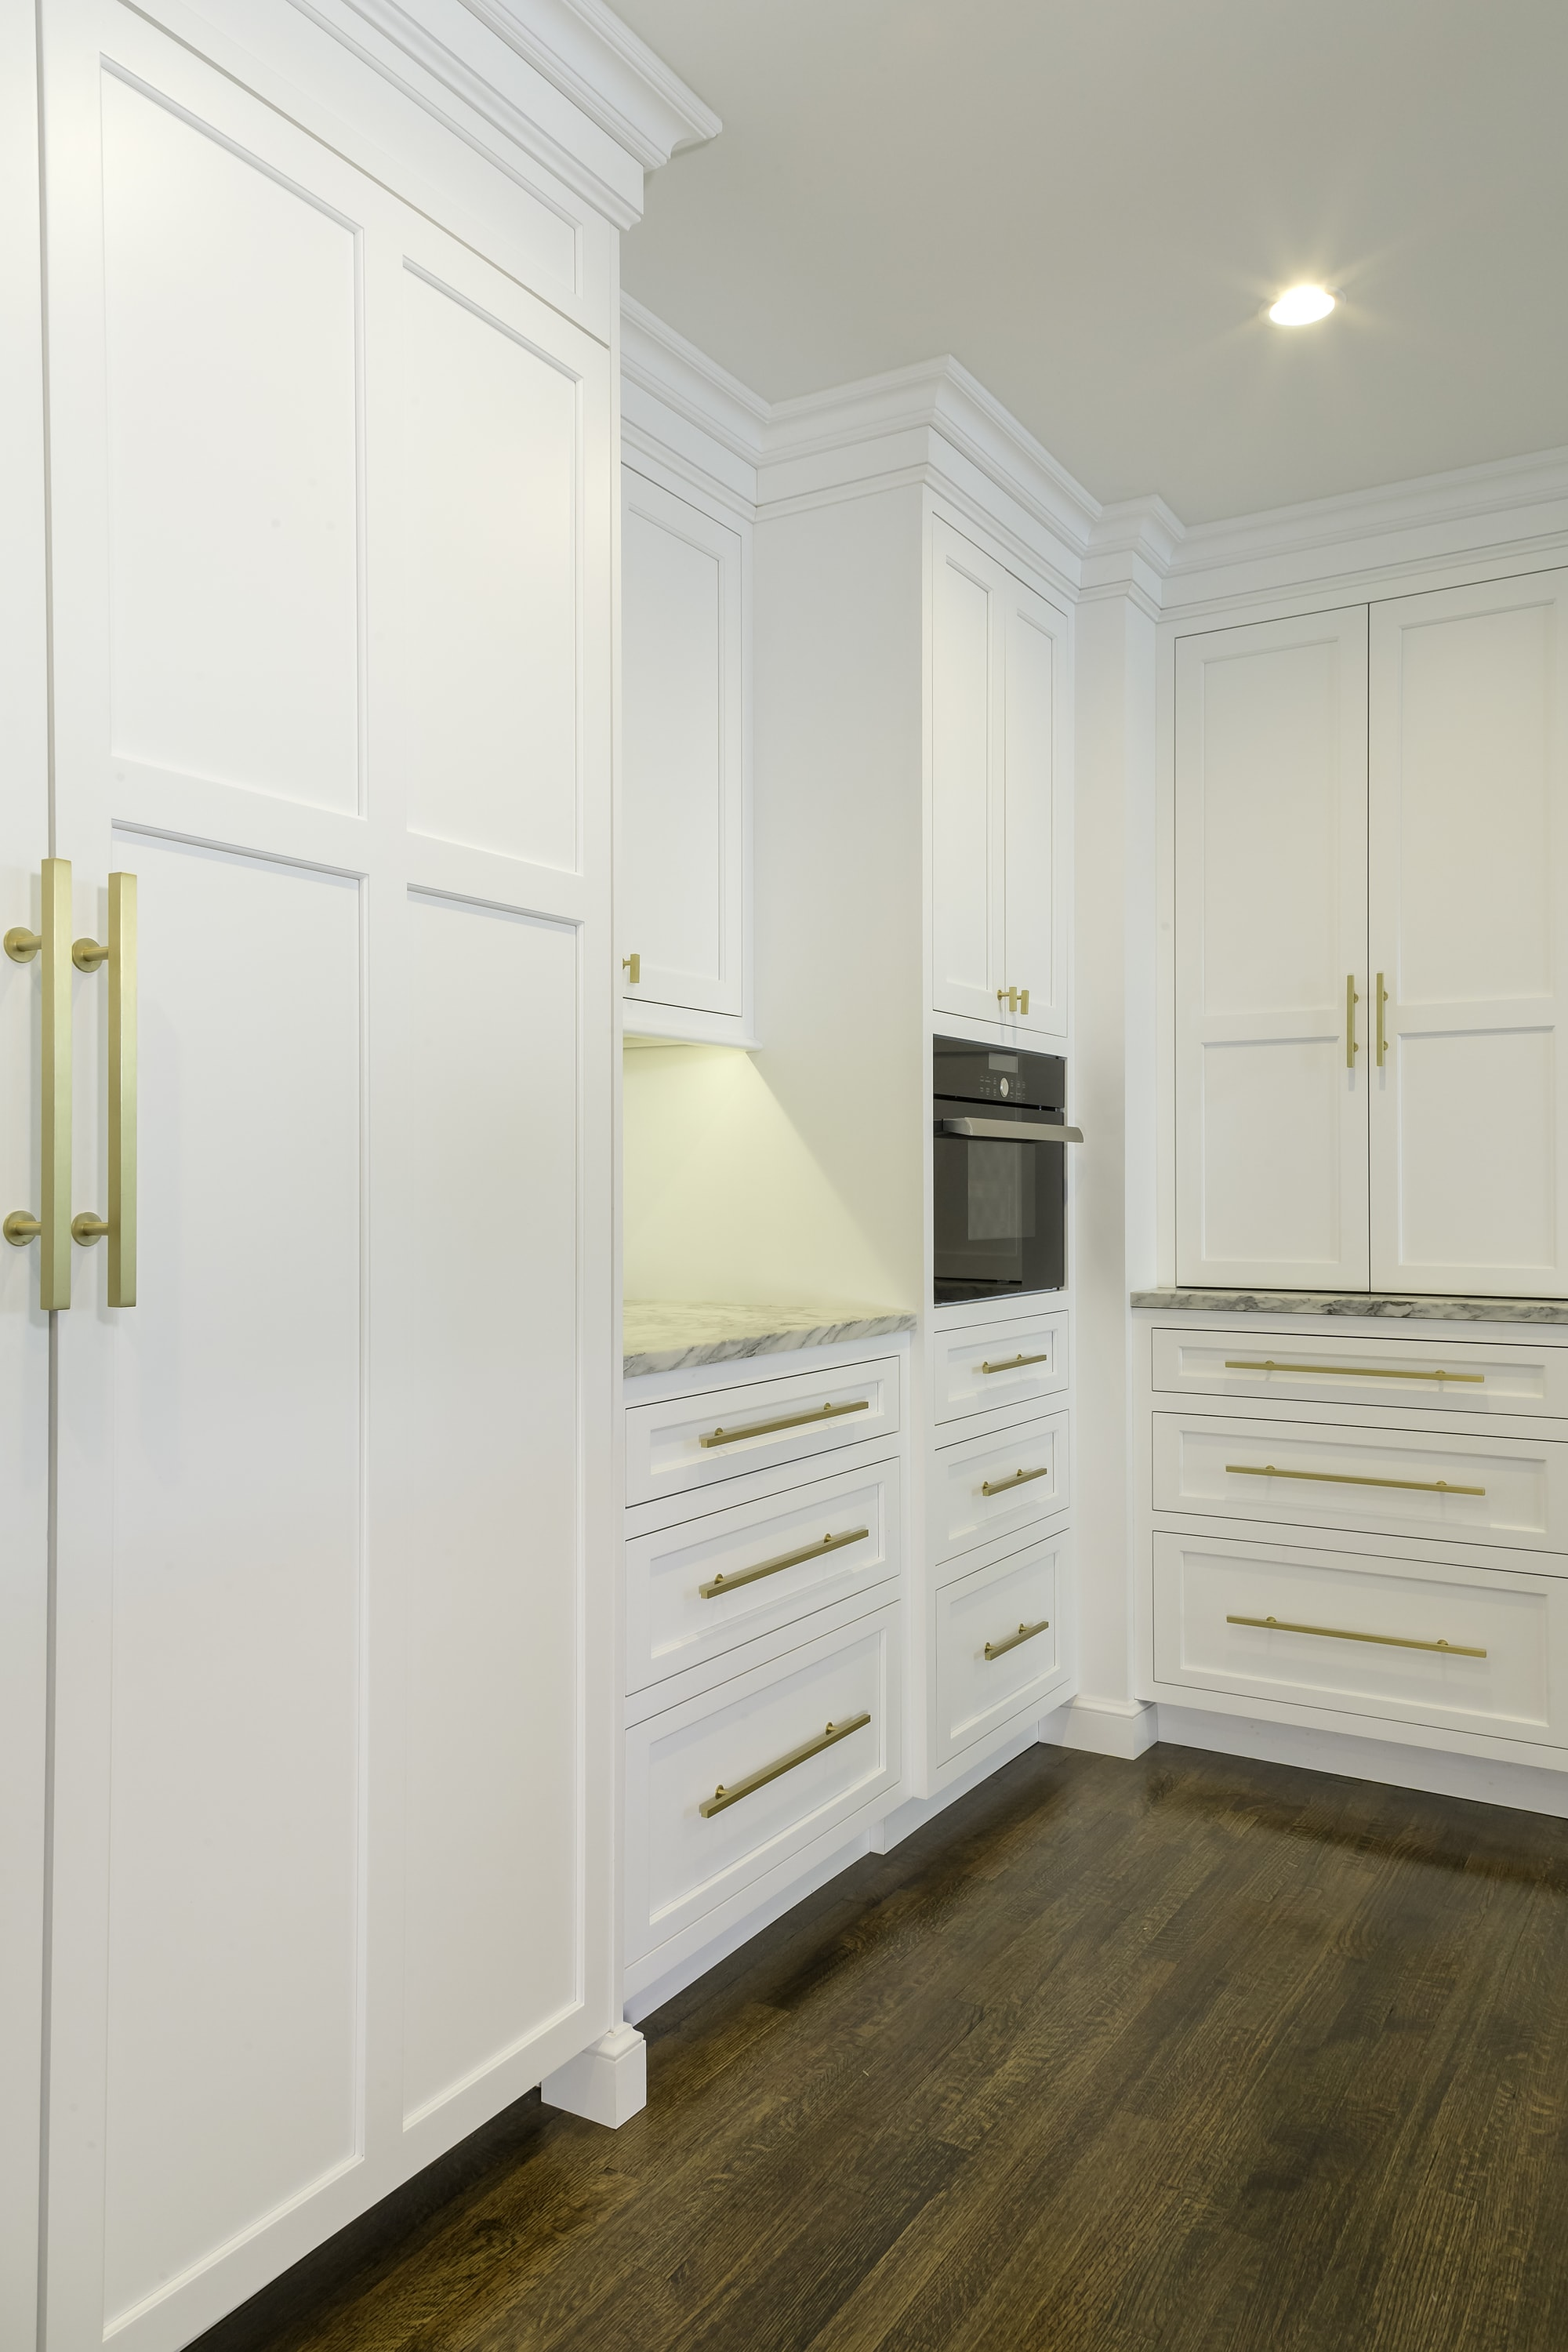 Transitional style kitchen with large cabinet for storage